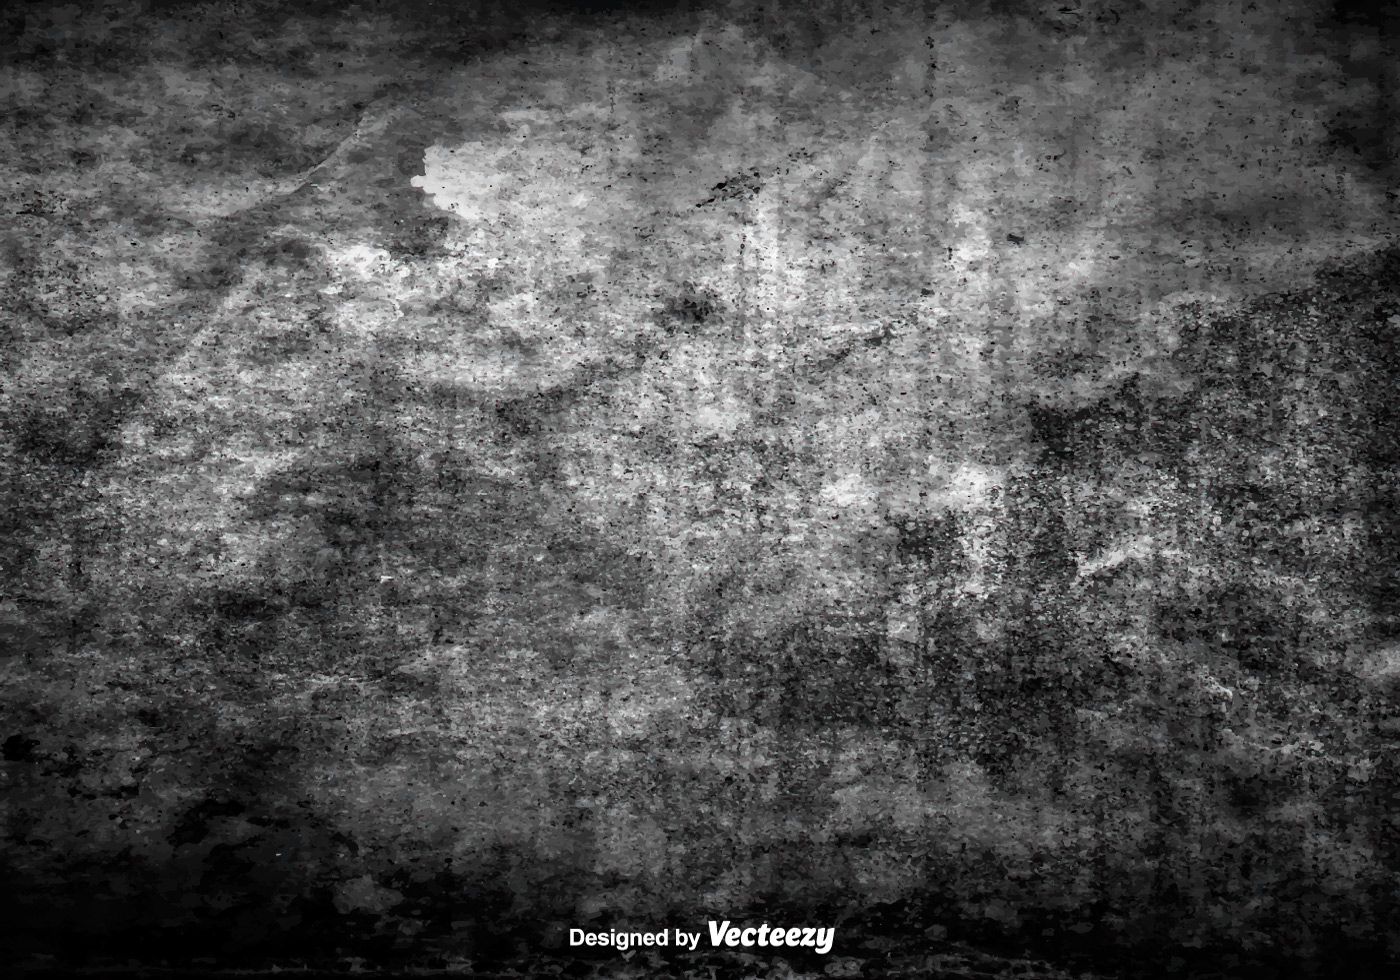 Grunge Texture Free Vector Art - (5033 Free Downloads)